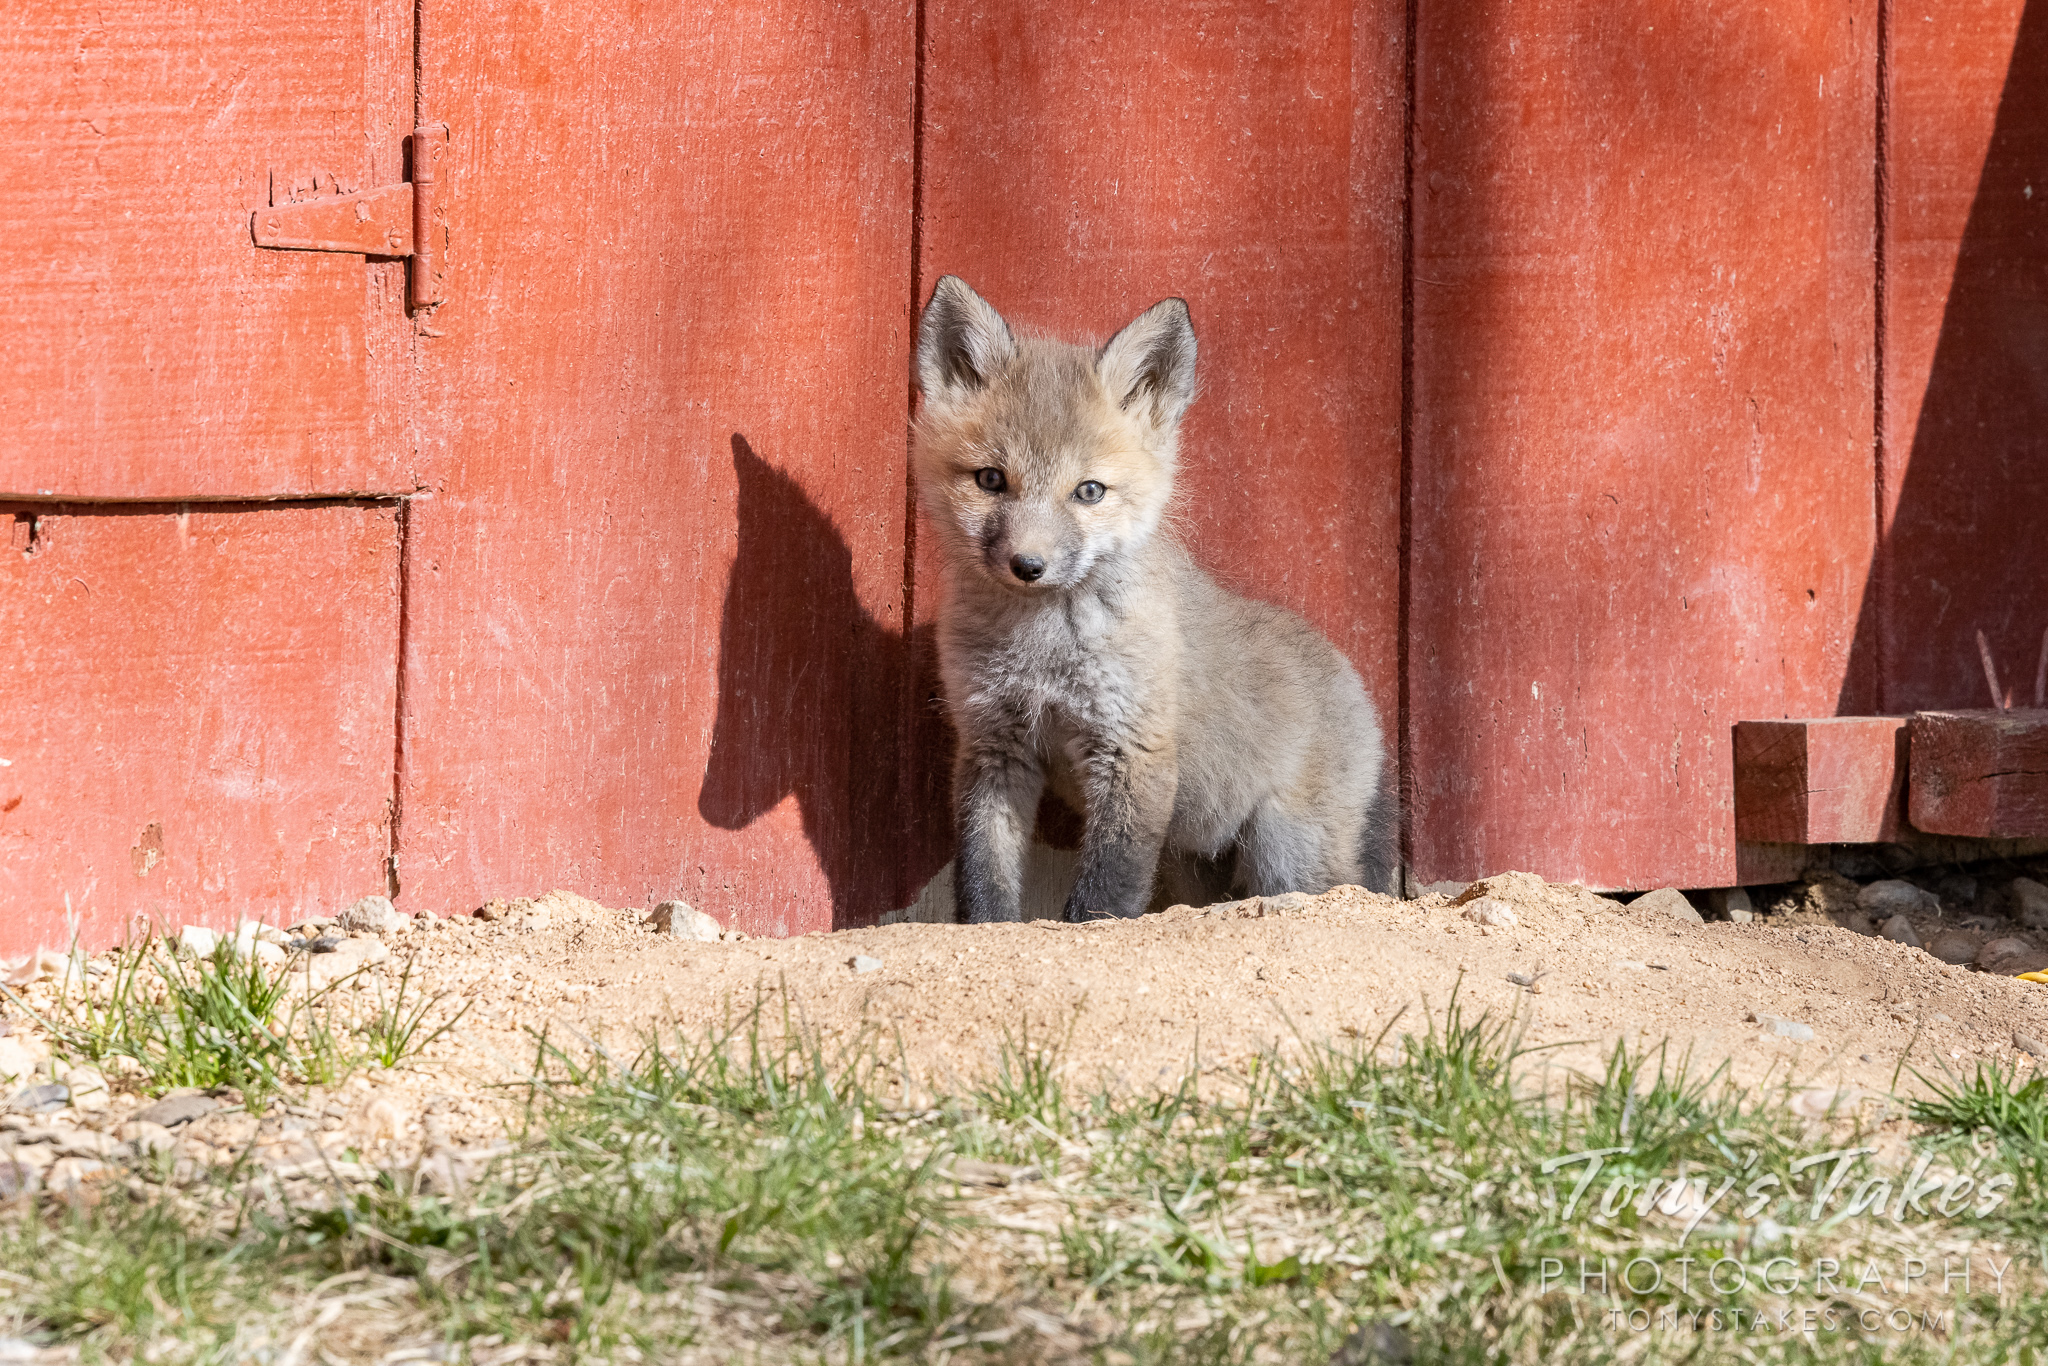 Fox kit makes an appearance with its shadow